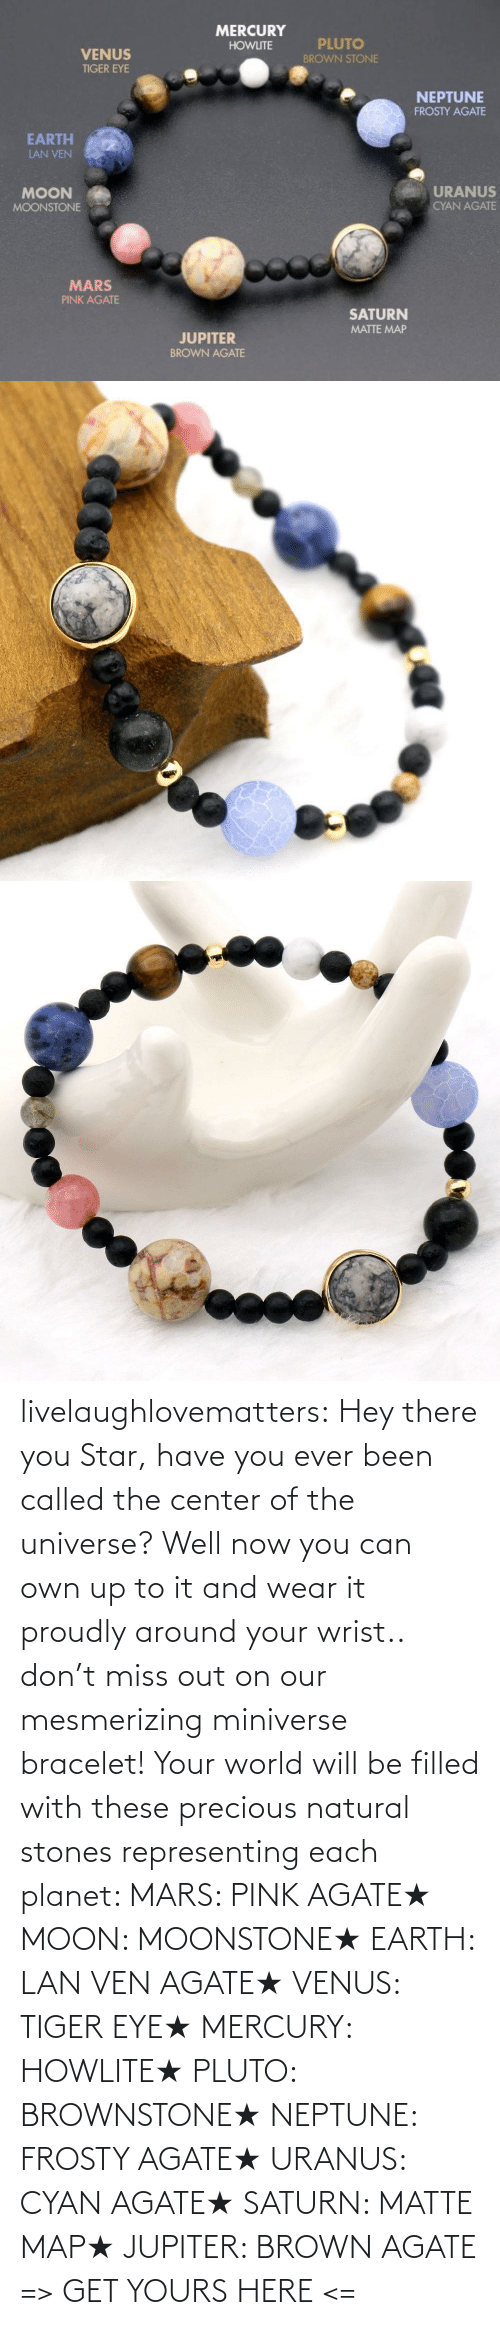 the universe: MERCURY  PLUTO  HOWLITE  VENUS  BROWN STONE  TIGER EYE  NEPTUNE  FROSTY AGATE  EARTH  LAN VEN  URANUS  MOON  CYAN AGATE  MOONSTONE  MARS  PINK AGATE  SATURN  MATTE MAP  JUPITER  BROWN AGATE livelaughlovematters: Hey there you Star, have you ever been called the center of the universe? Well now you can own up to it and wear it proudly around your wrist.. don't miss out on our mesmerizing miniverse bracelet! Your world will be filled with these precious natural stones representing each planet:  MARS: PINK AGATE★ MOON: MOONSTONE★ EARTH: LAN VEN AGATE★ VENUS: TIGER EYE★ MERCURY: HOWLITE★ PLUTO: BROWNSTONE★ NEPTUNE: FROSTY AGATE★ URANUS: CYAN AGATE★ SATURN: MATTE MAP★ JUPITER: BROWN AGATE => GET YOURS HERE <=